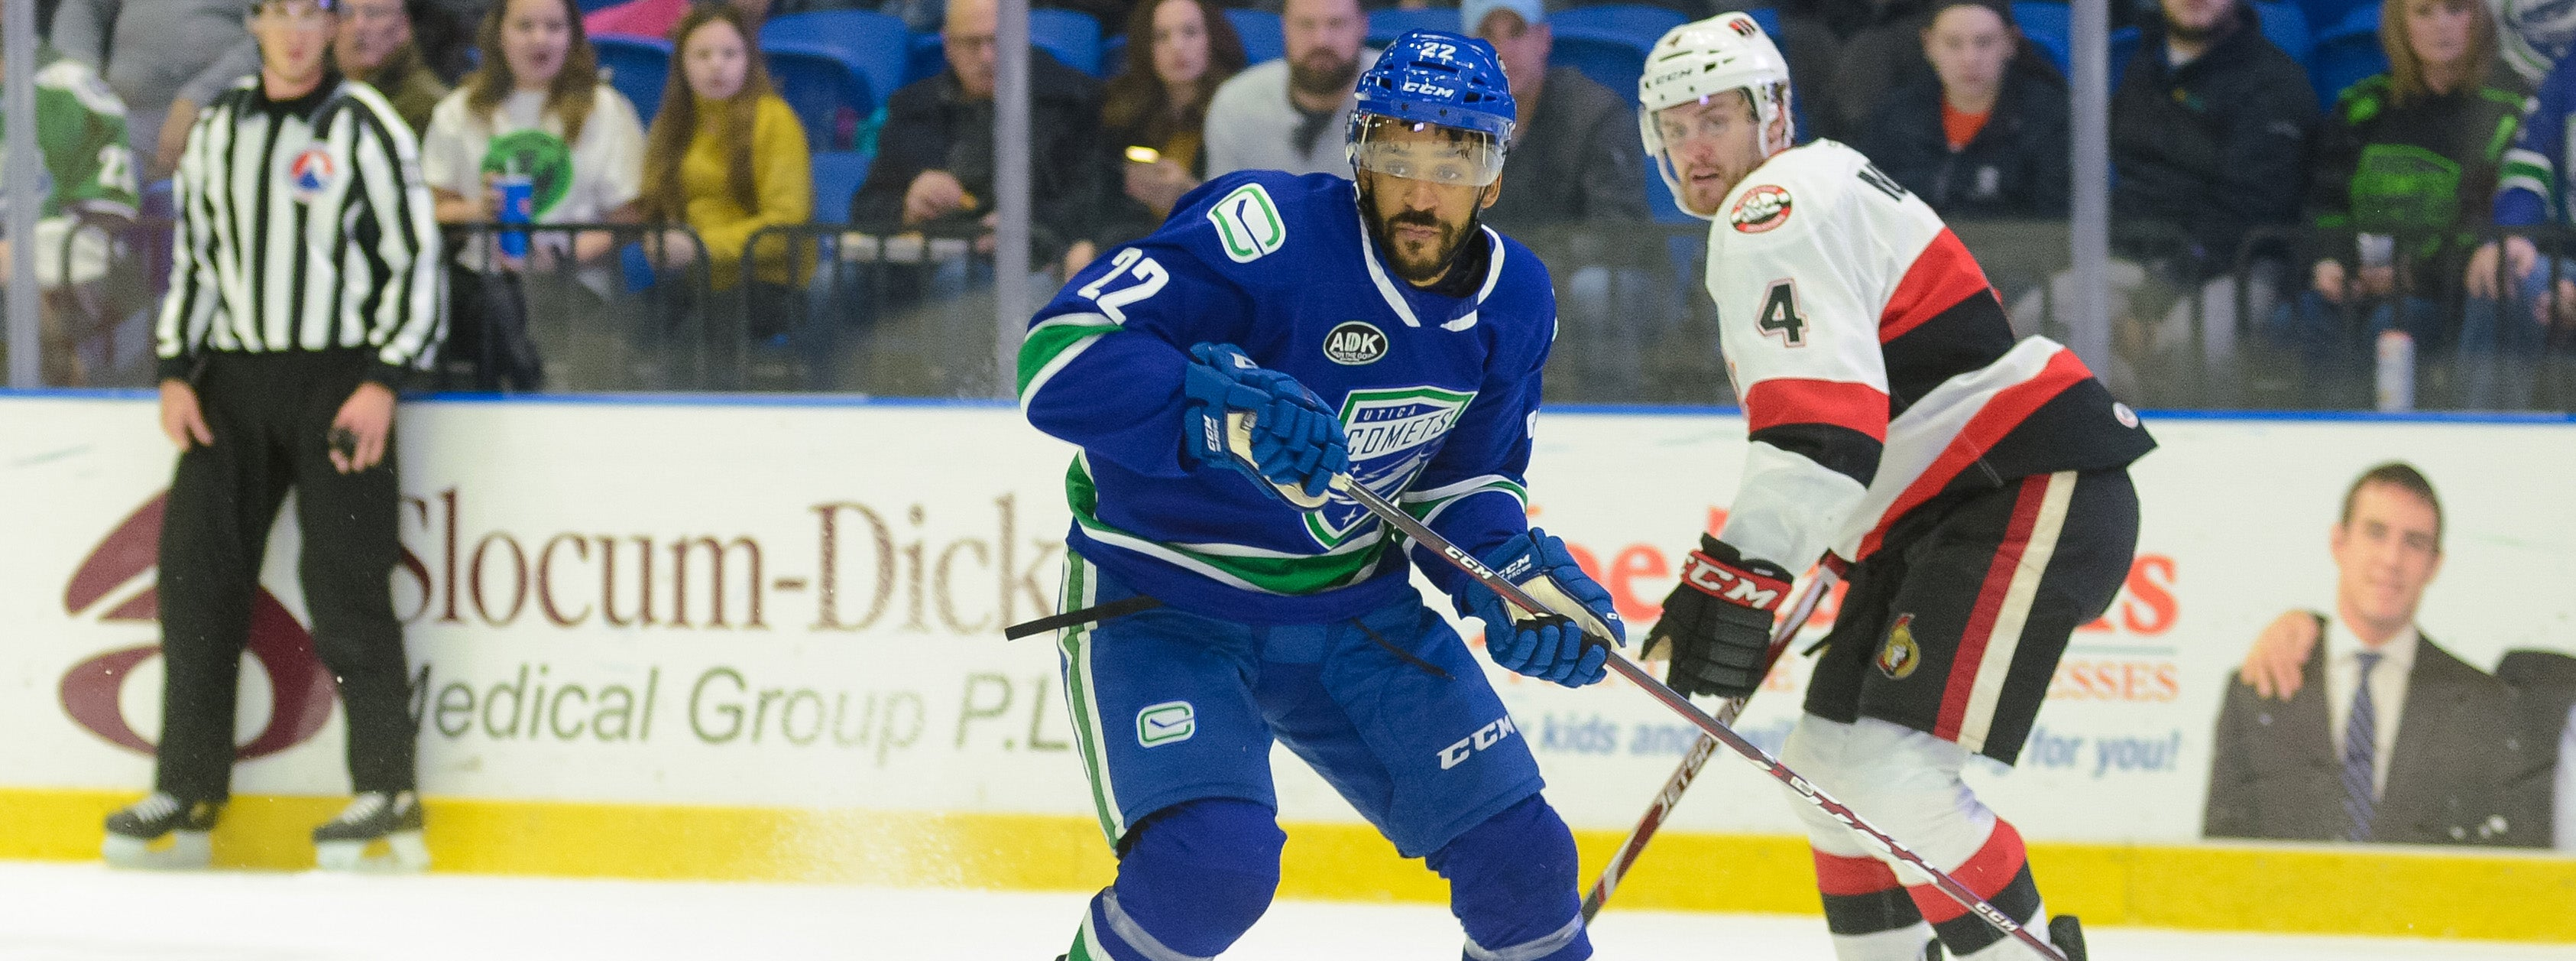 FOUR UNANSWERED GOALS SINK COMETS IN LOSS TO BELLVILLE